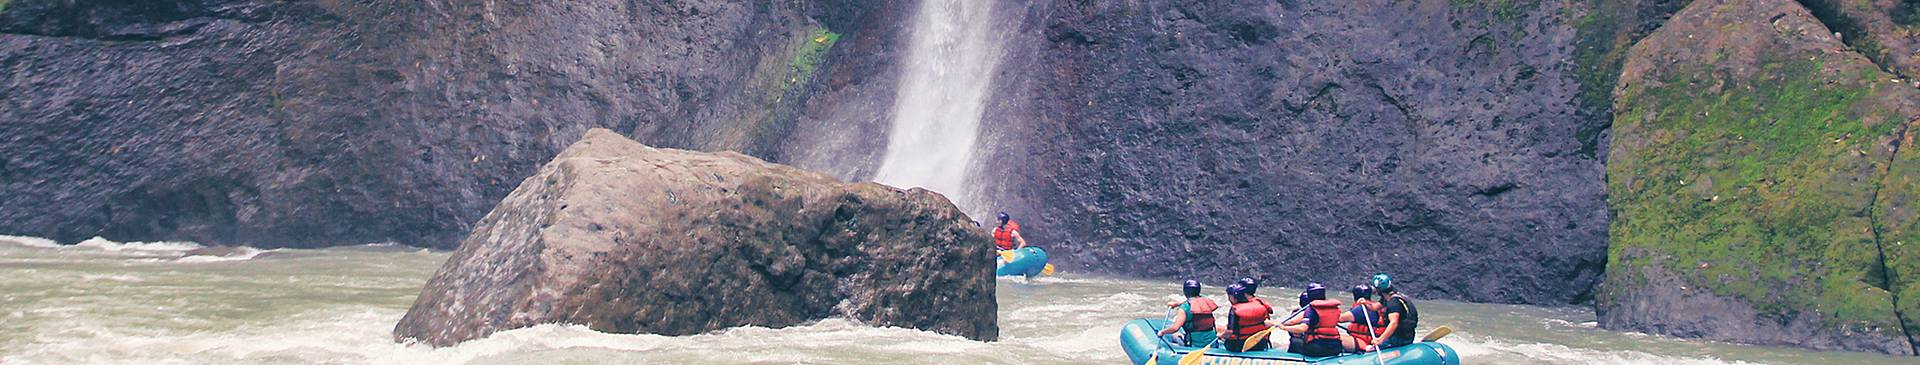 Adventure holidays in Costa Rica